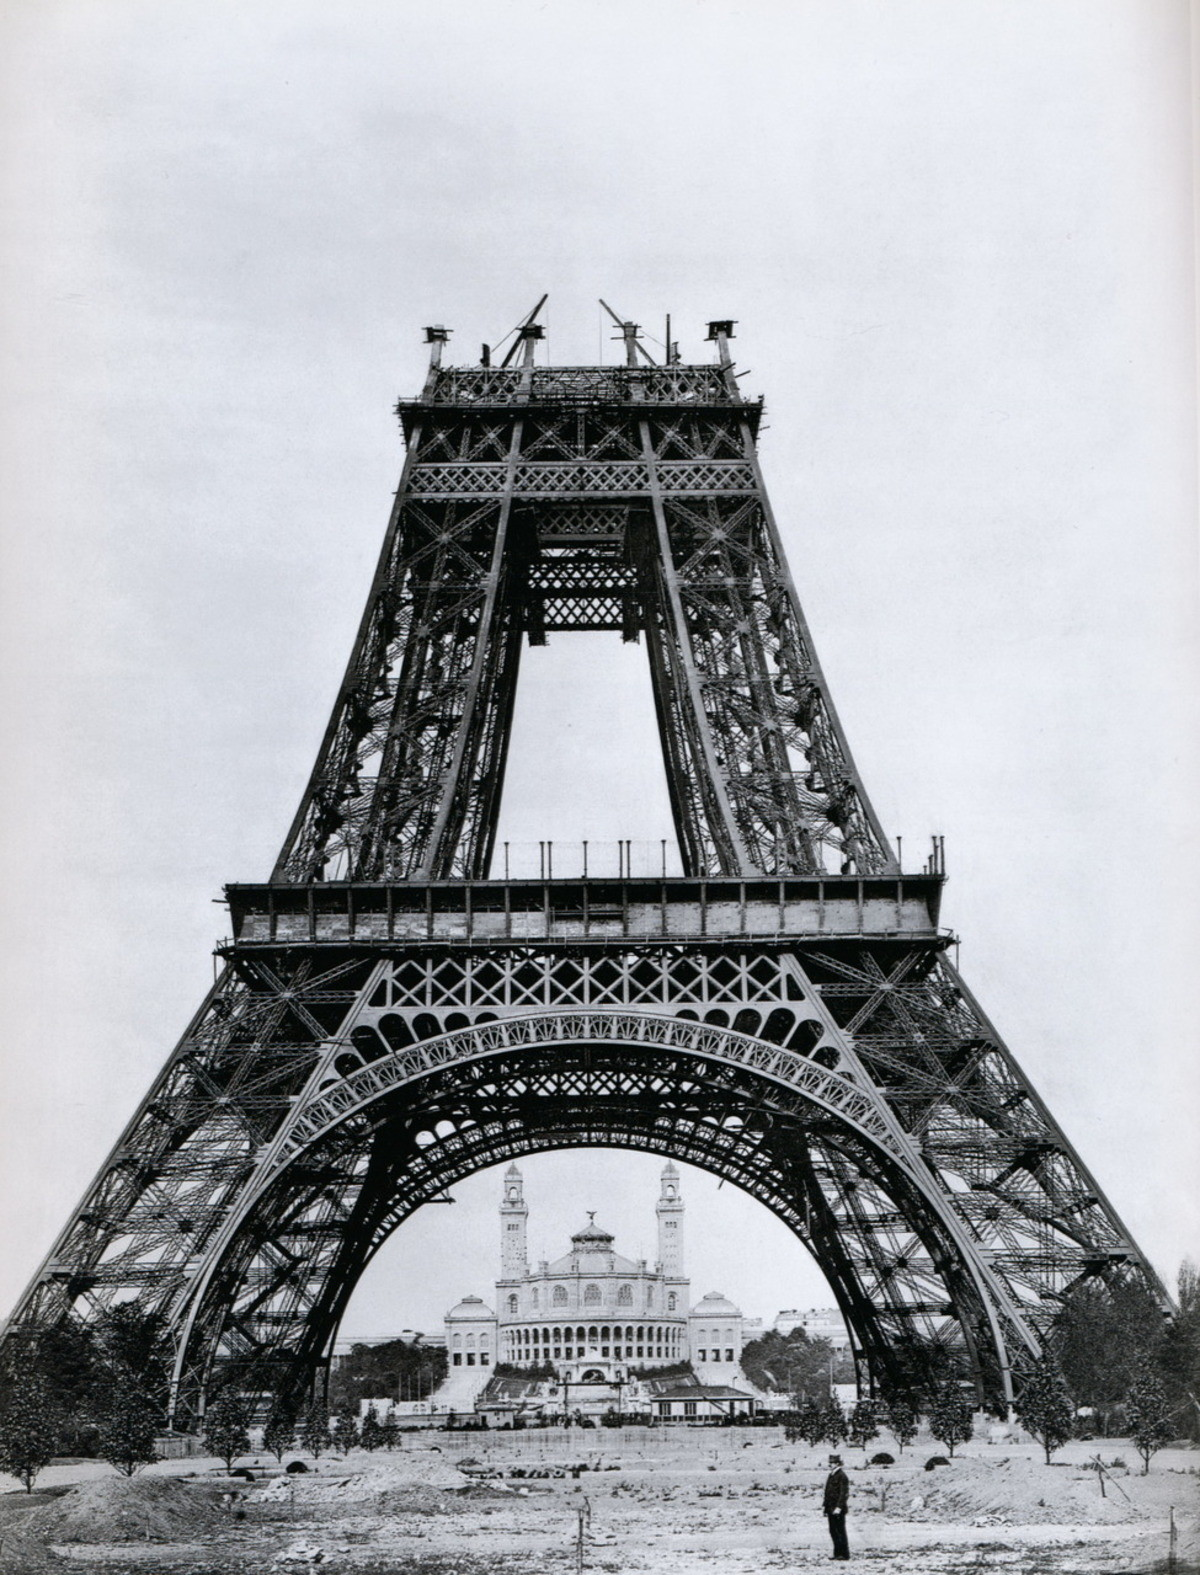 The Eiffel Stump. That's what you get for buying from Ikea... magnificent work of engineering. if Man is remembered for anything, I hope he's remembered for this.